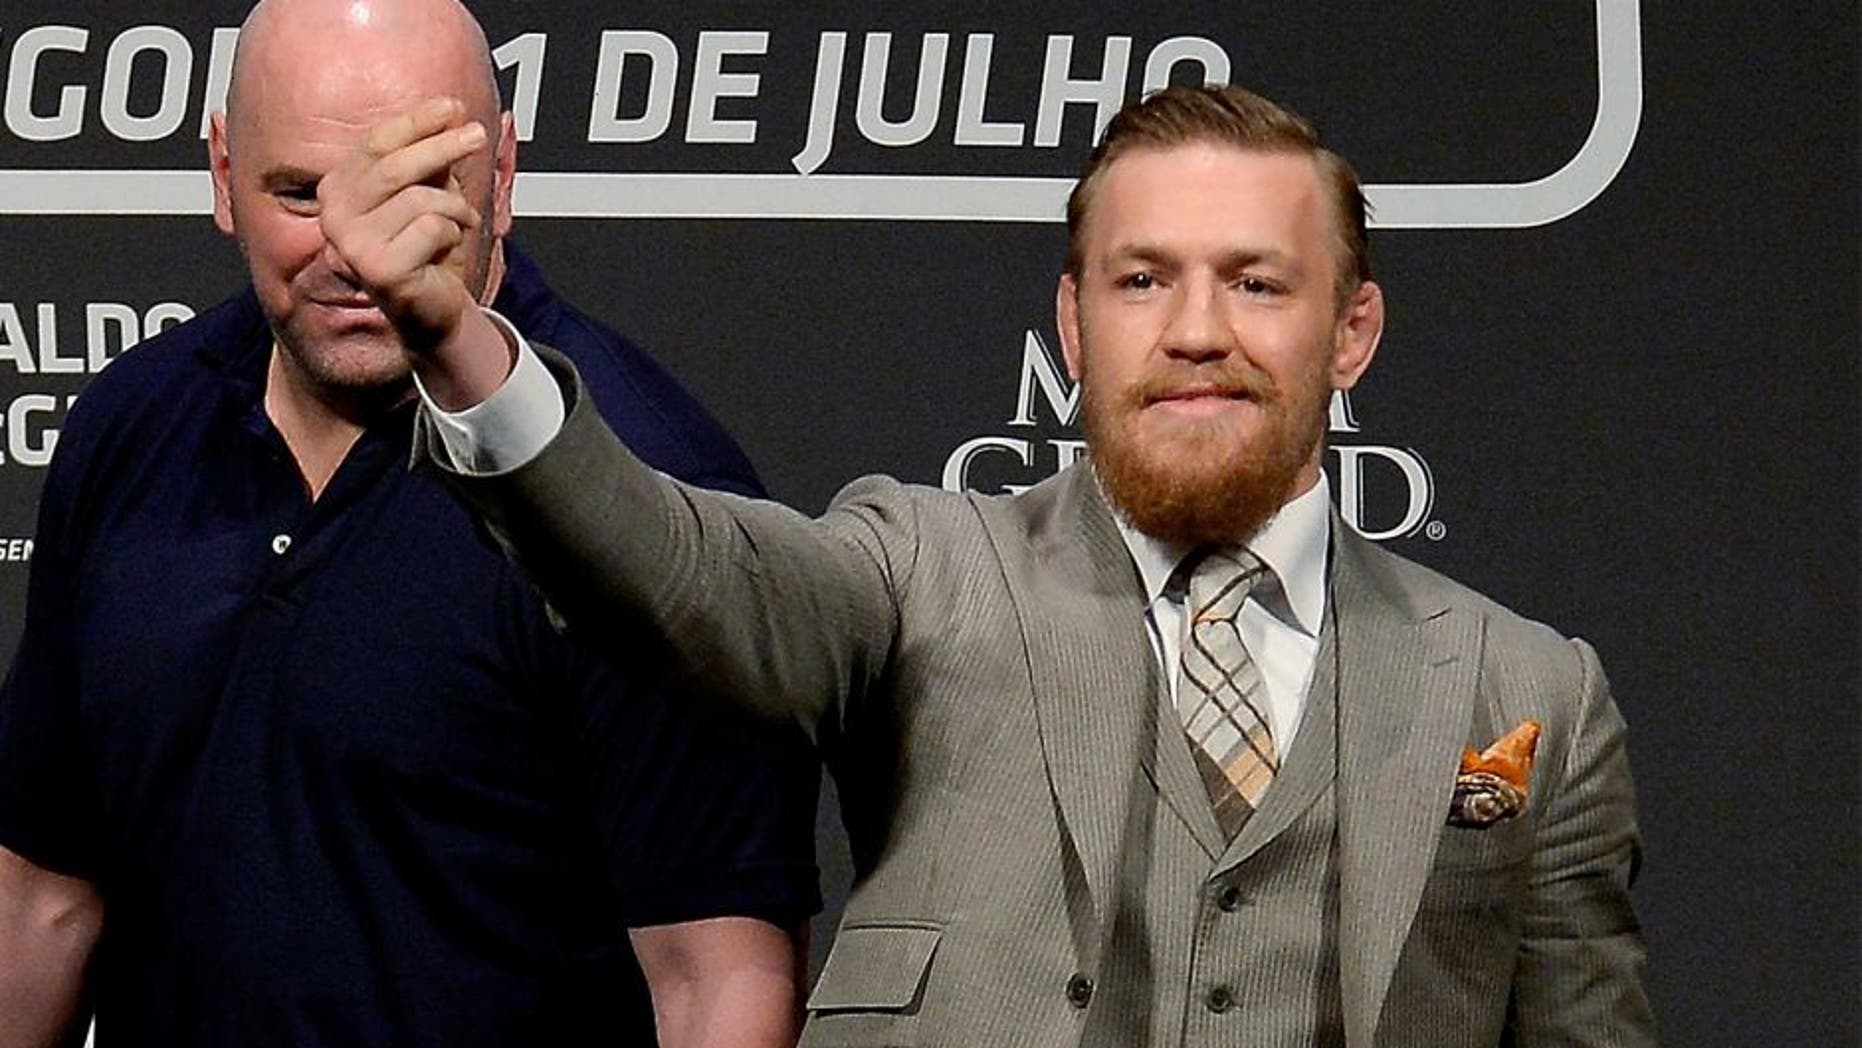 RIO DE JANEIRO, BRAZIL - MARCH 20: UFC featherweight champion Jose Aldo of Brazil (L) and challenger Conor McGregor of Irleland face off as UFC President Dana White (C) stands in during the 189 World Media Tour Launch press conference at Maracanazinho, at Maracanazinho on March 20, 2015 in Rio de Janeiro, Brazil. (Photo by Alexandre Loureiro/Zuffa LLC/Zuffa LLC via Getty Images)